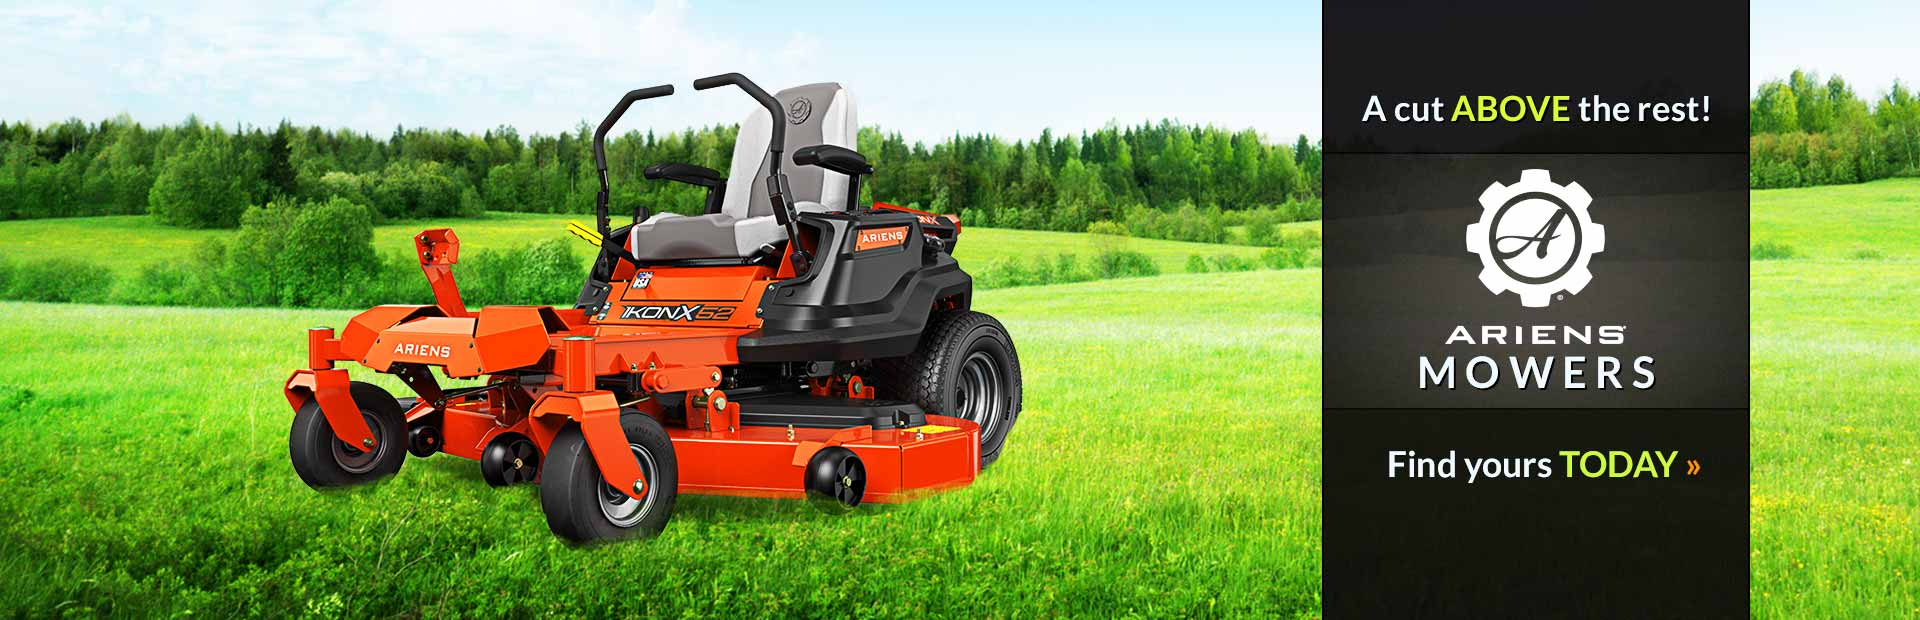 Ariens Mowers: Click here to view our selection.